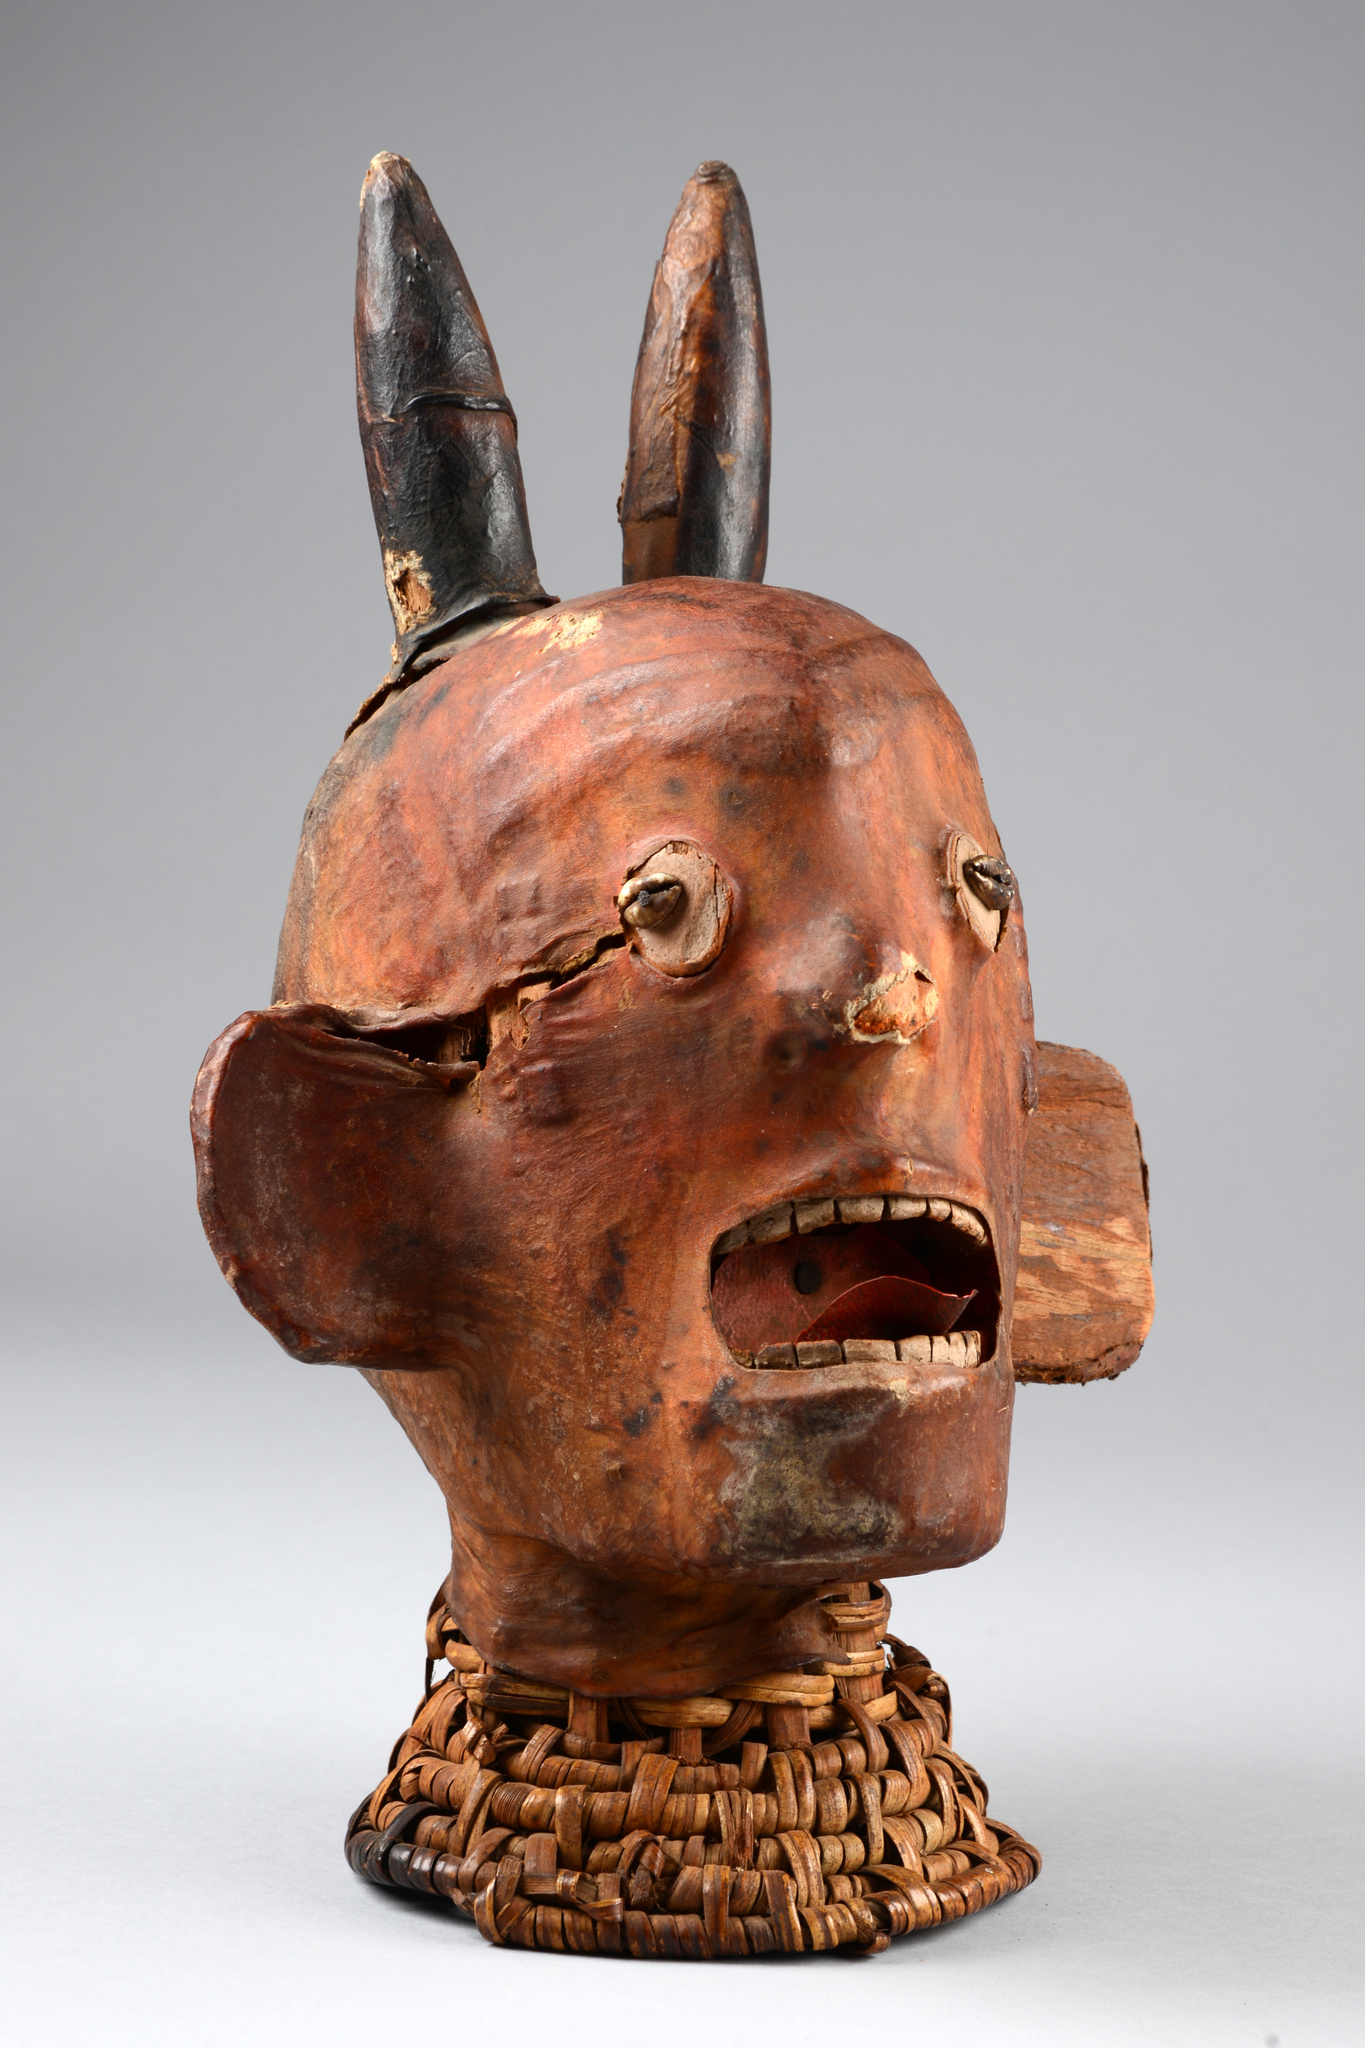 Anthropomorphic headdress with horns